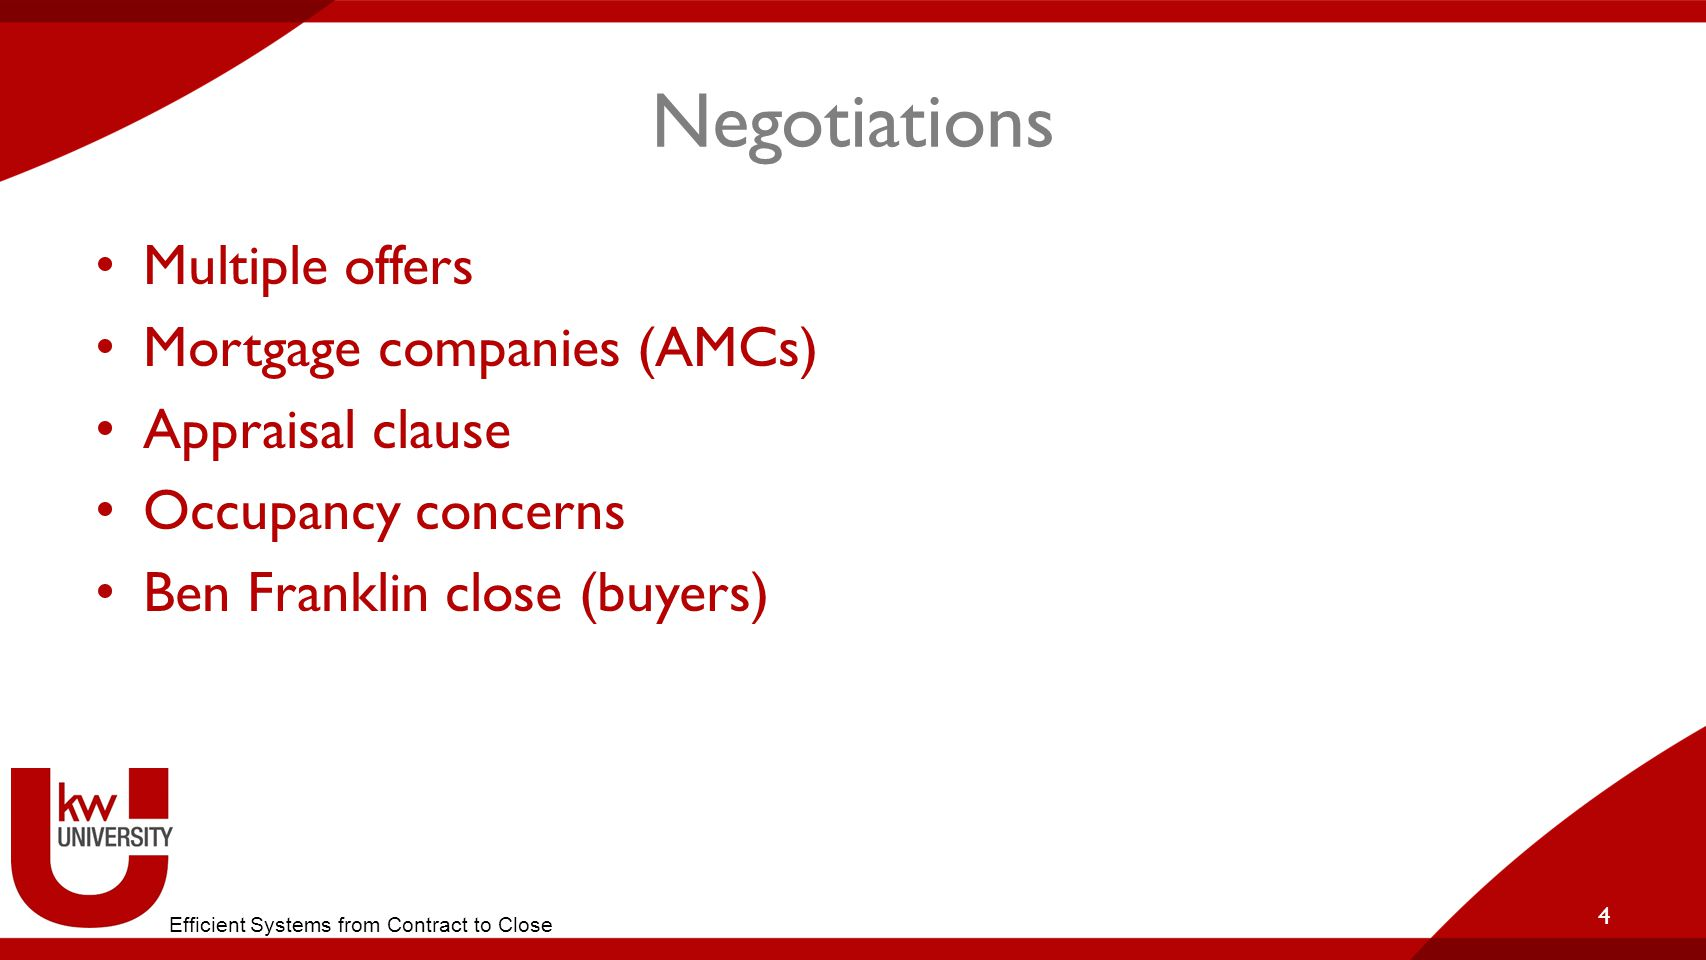 Negotiations Multiple offers Mortgage companies (AMCs) Appraisal clause Occupancy concerns Ben Franklin close (buyers) 4 Efficient Systems from Contract to Close